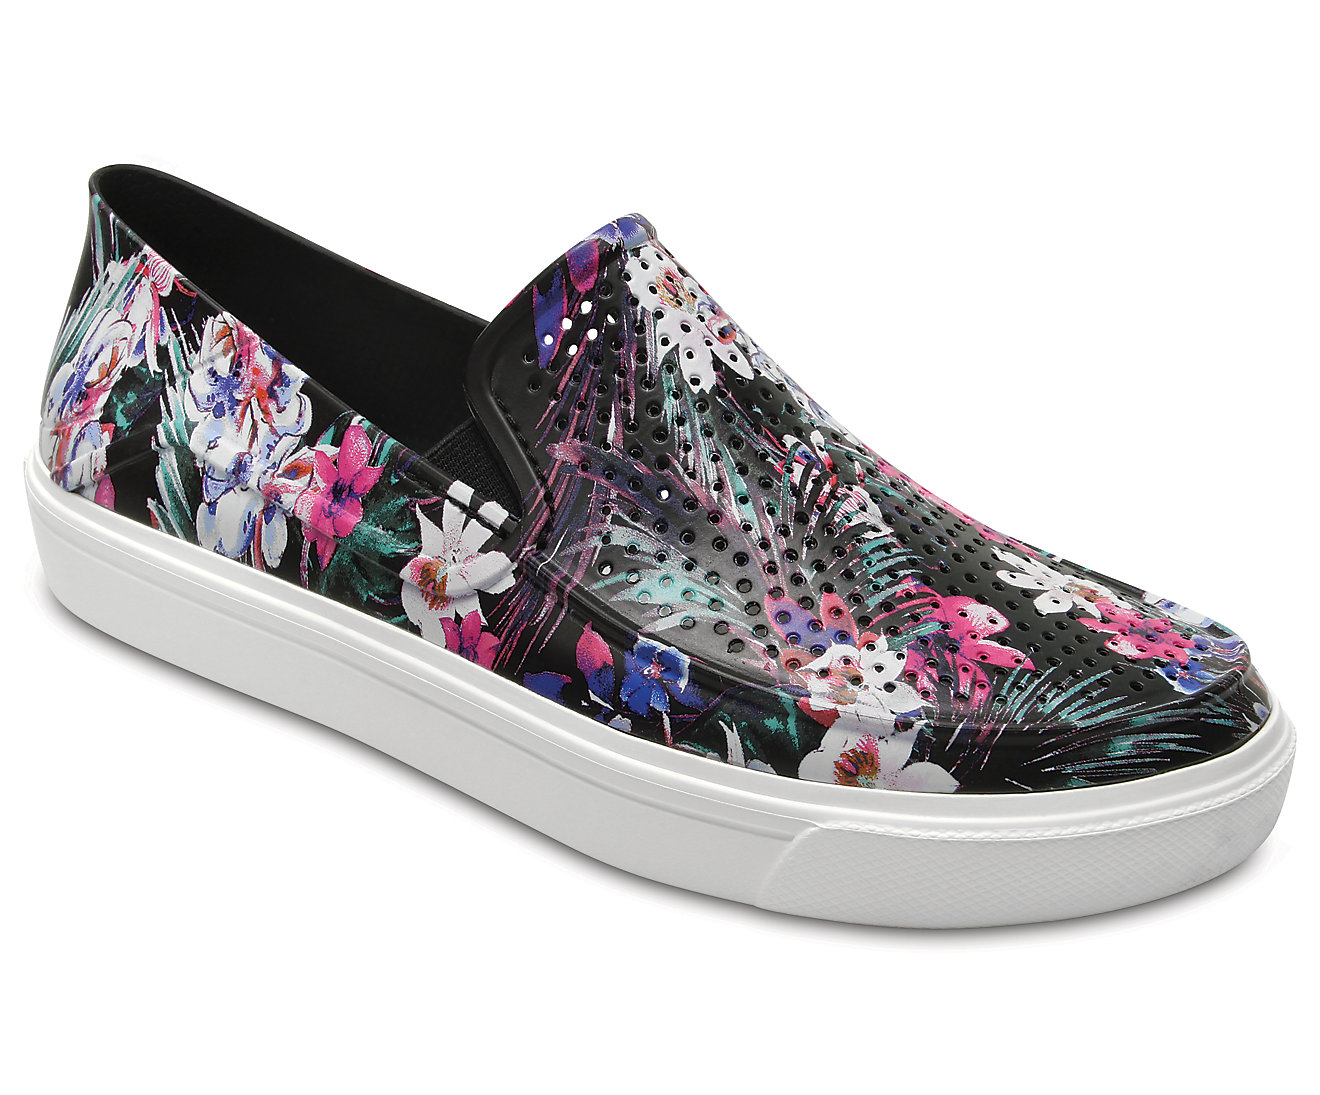 Crocs barevné slip-on boty Citilane Roka Graphic Tropical